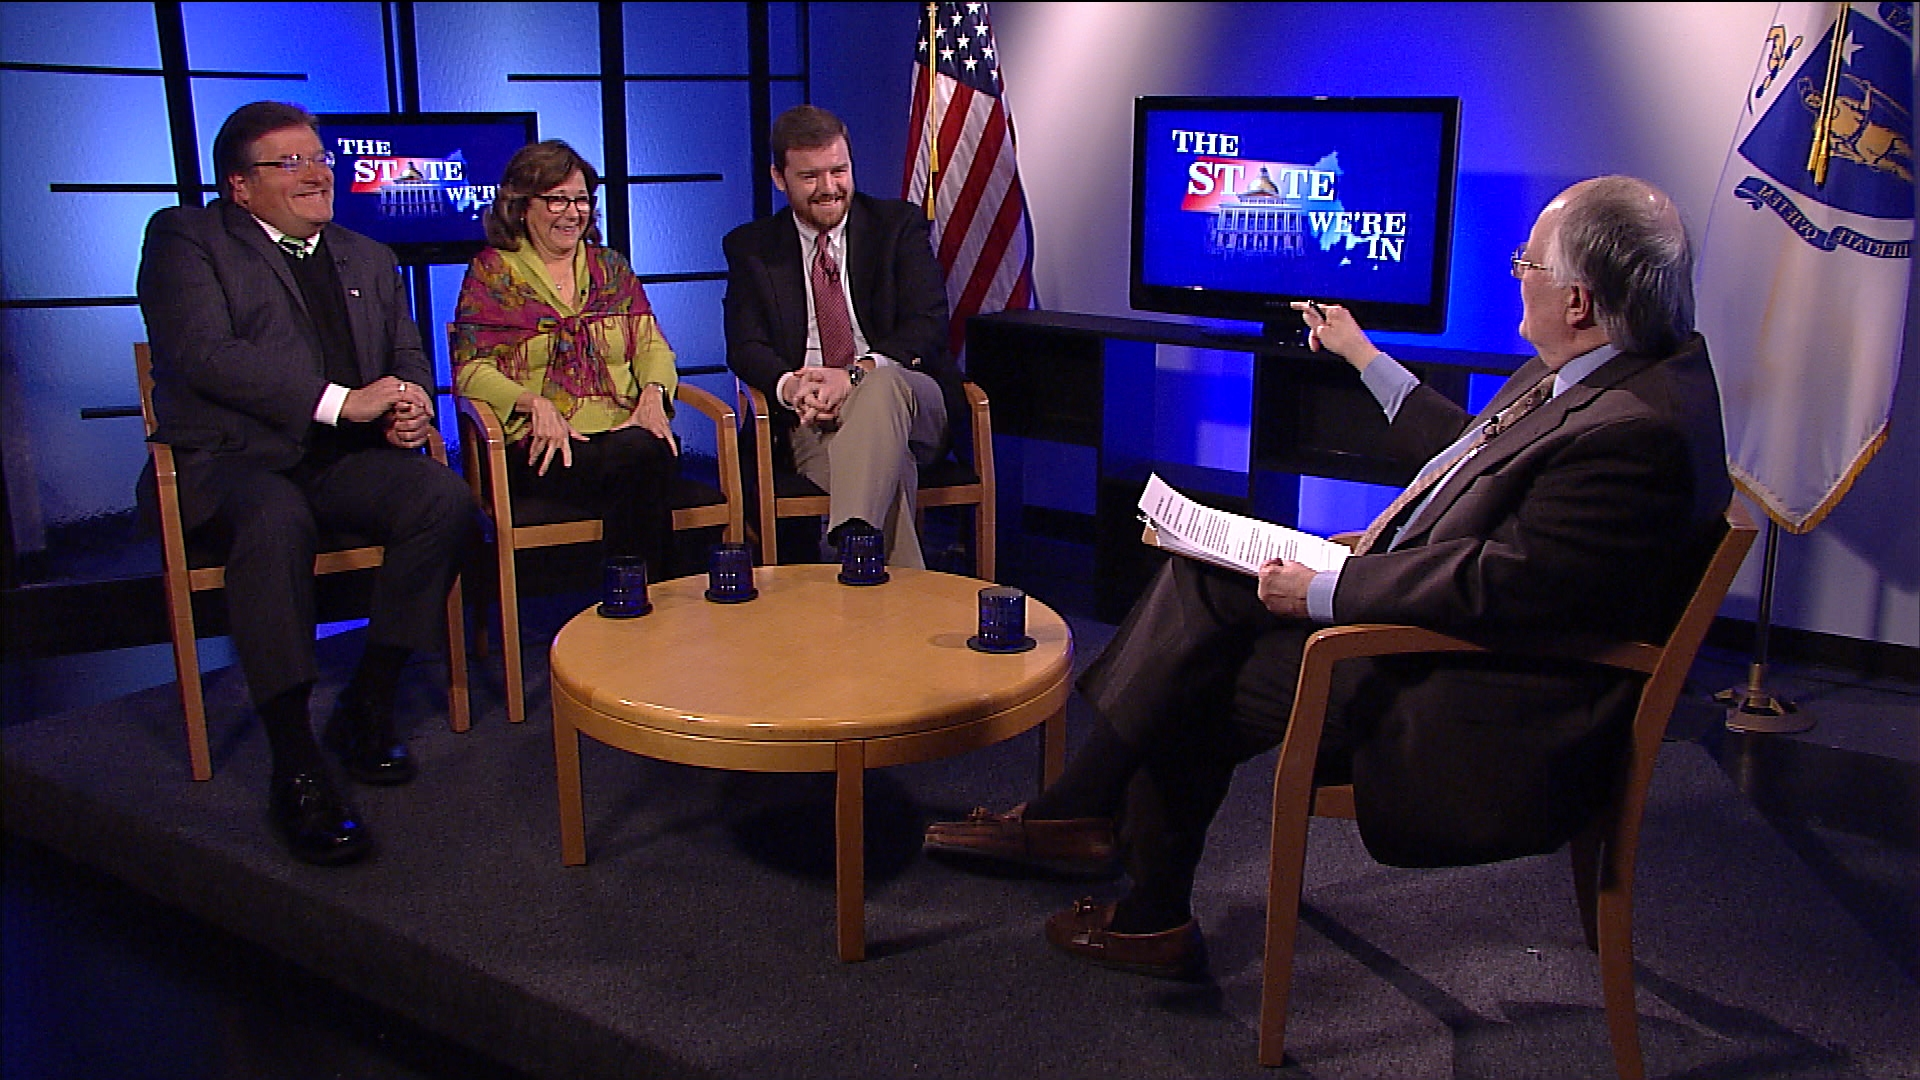 Tony Cignoli, Prof. Jerold Duquette, & Dr. Patricia Peters Martin discuss the political mood of a divided America after the election, and how to cope.